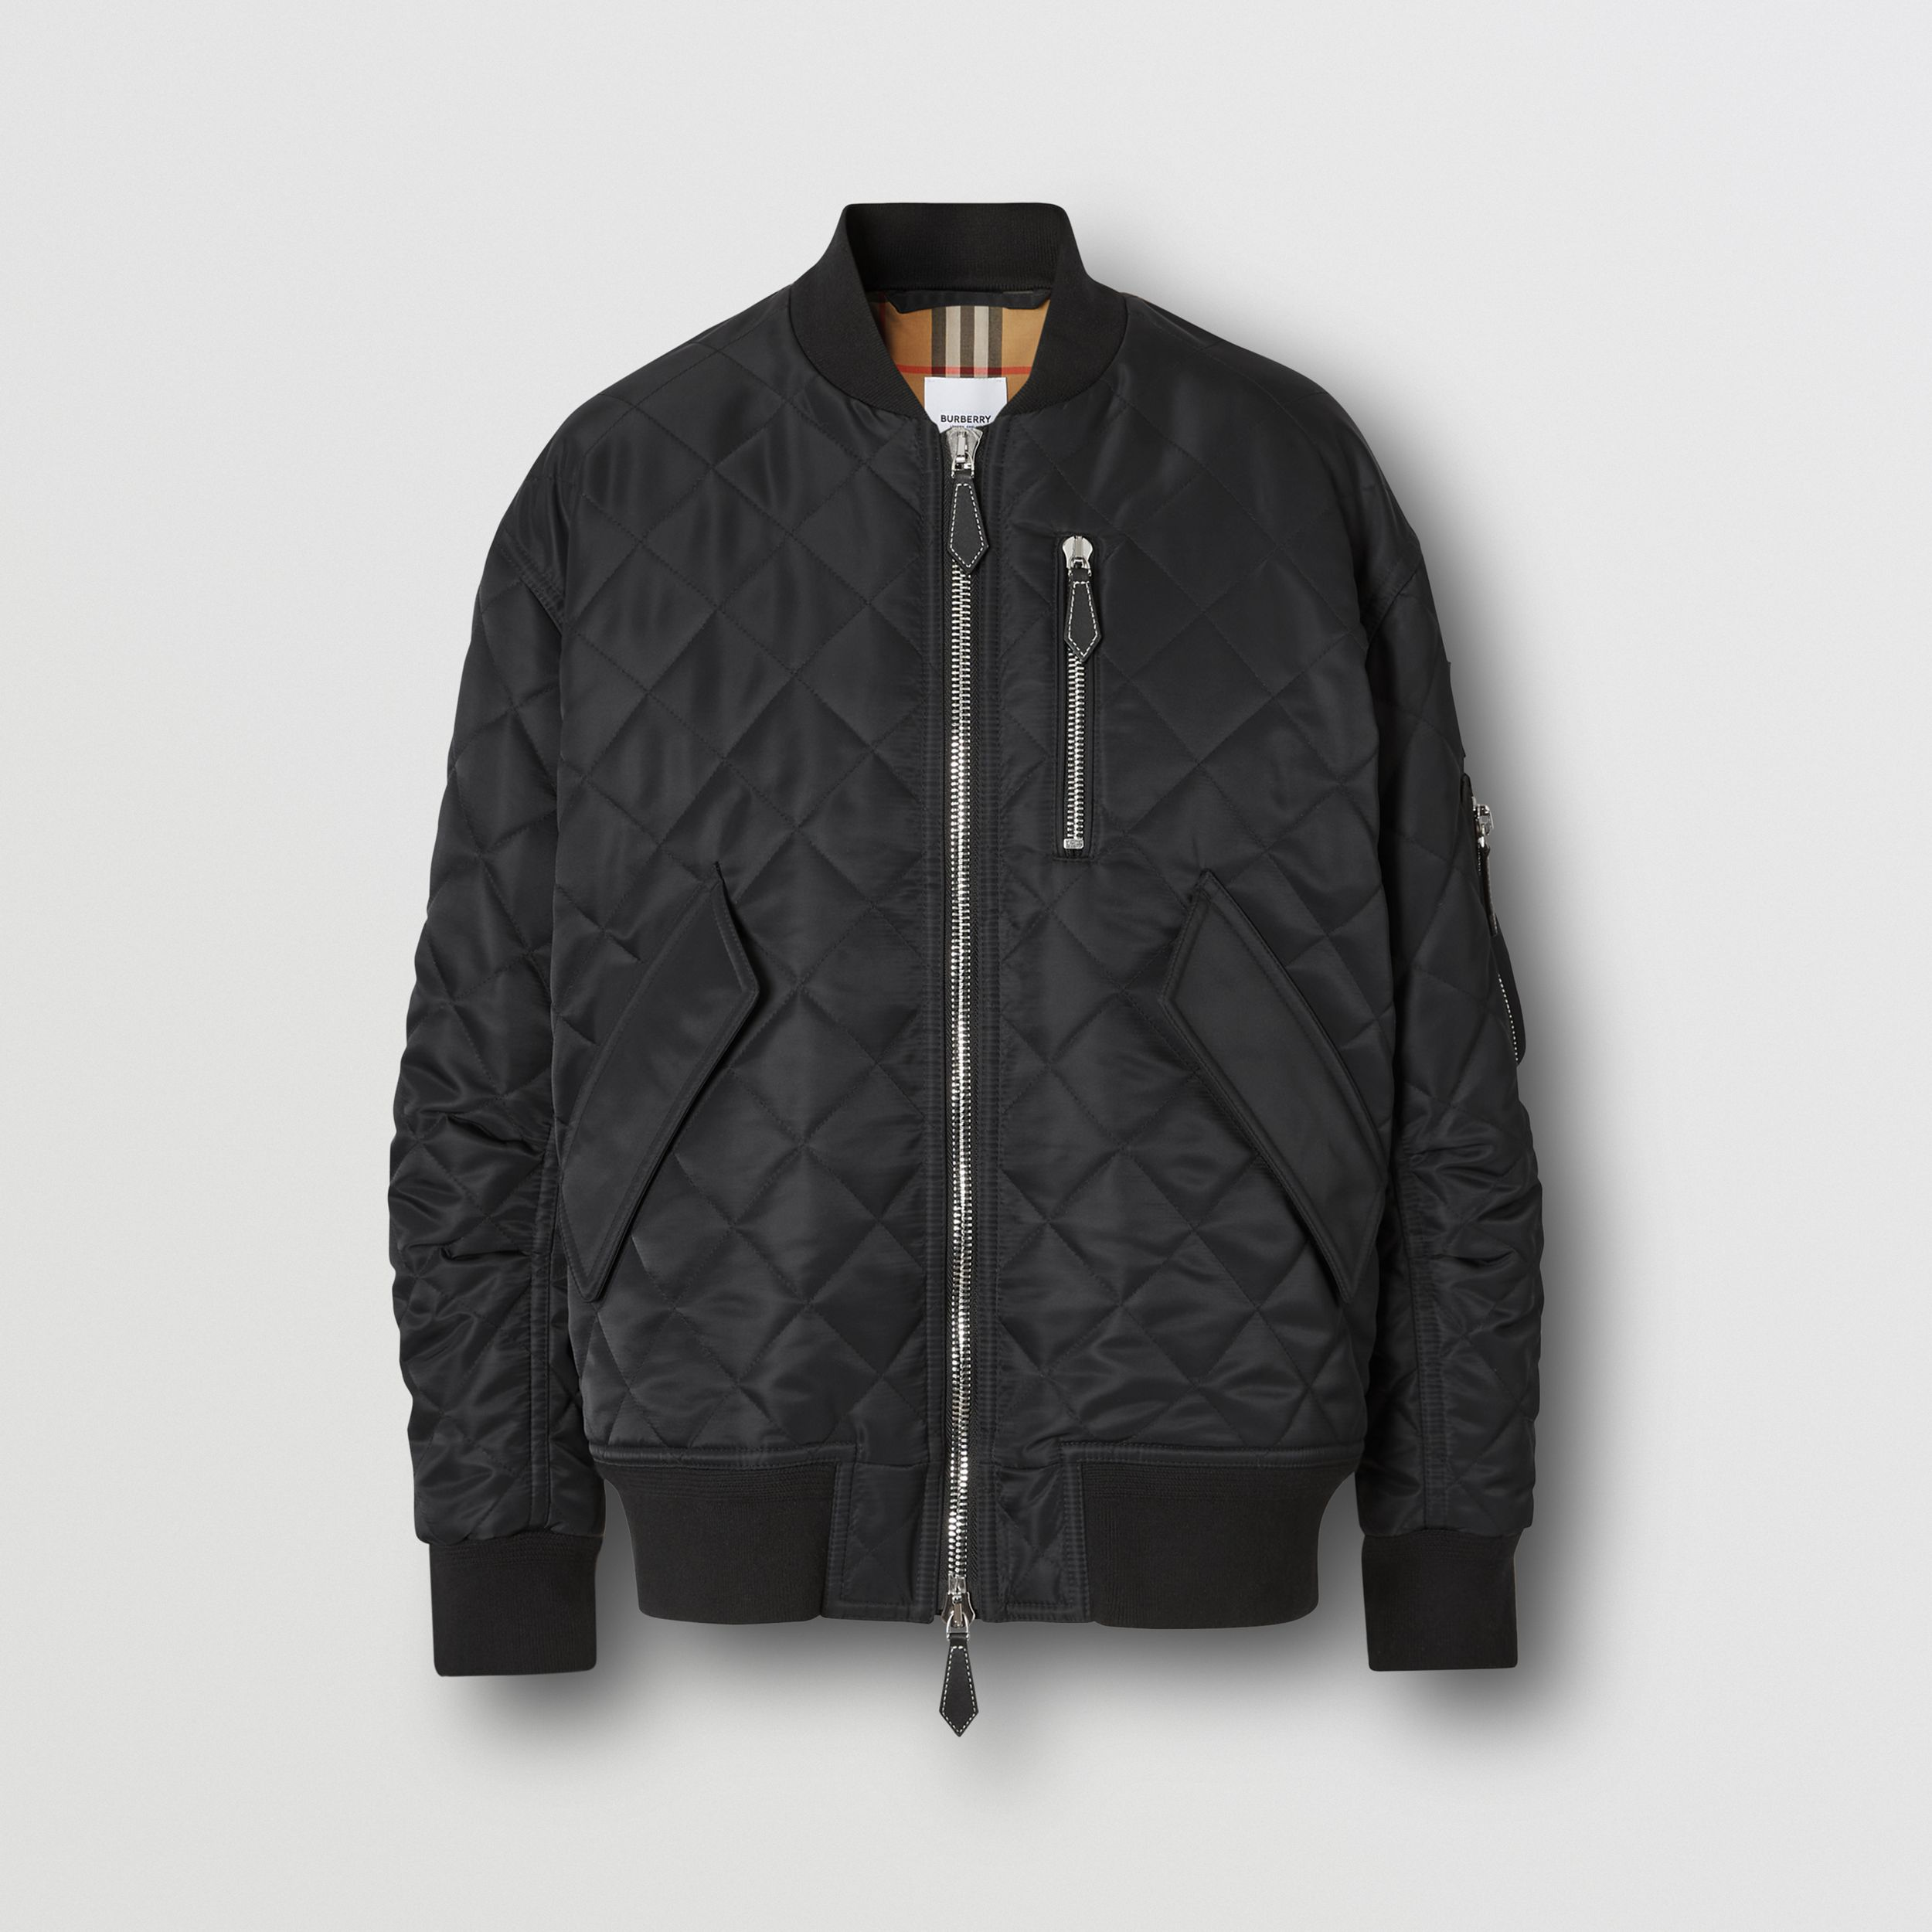 Diamond Quilted Nylon and Cotton Bomber Jacket in Black | Burberry United Kingdom - 4